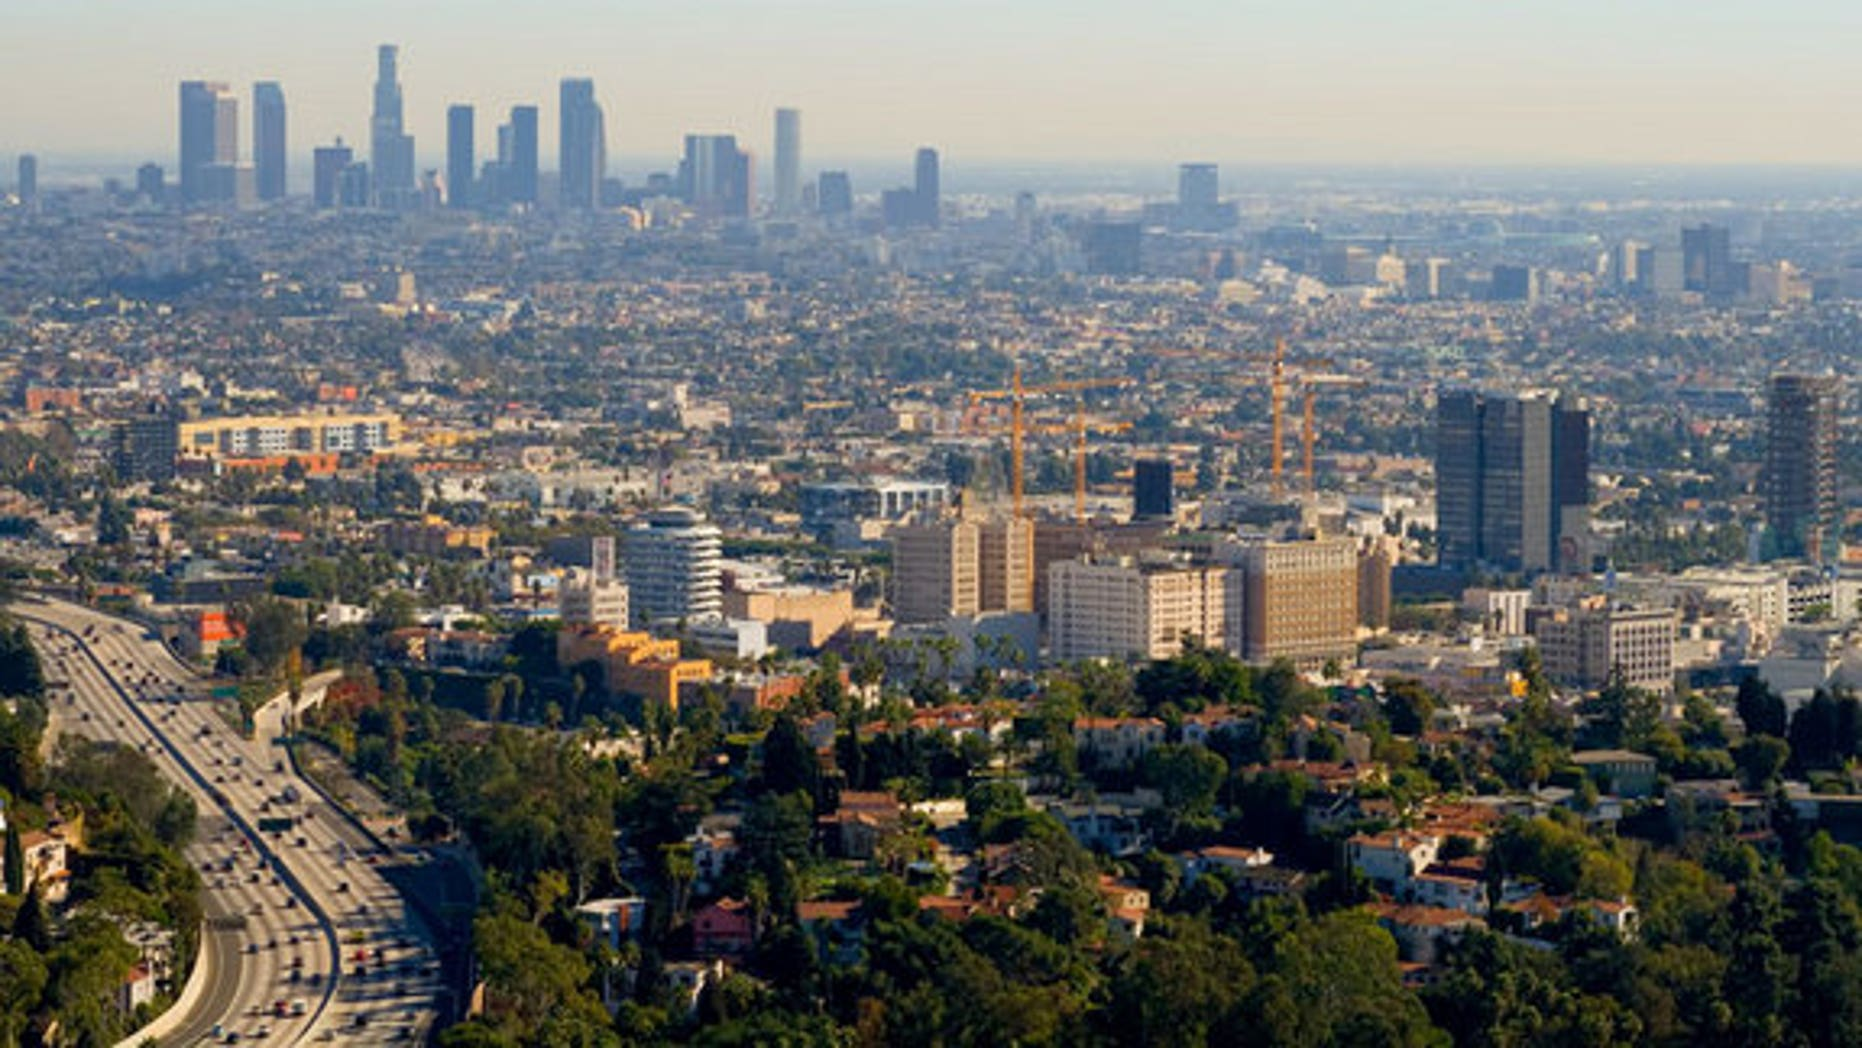 The skyline of Los Angeles with a layer of smog hanging over the city.